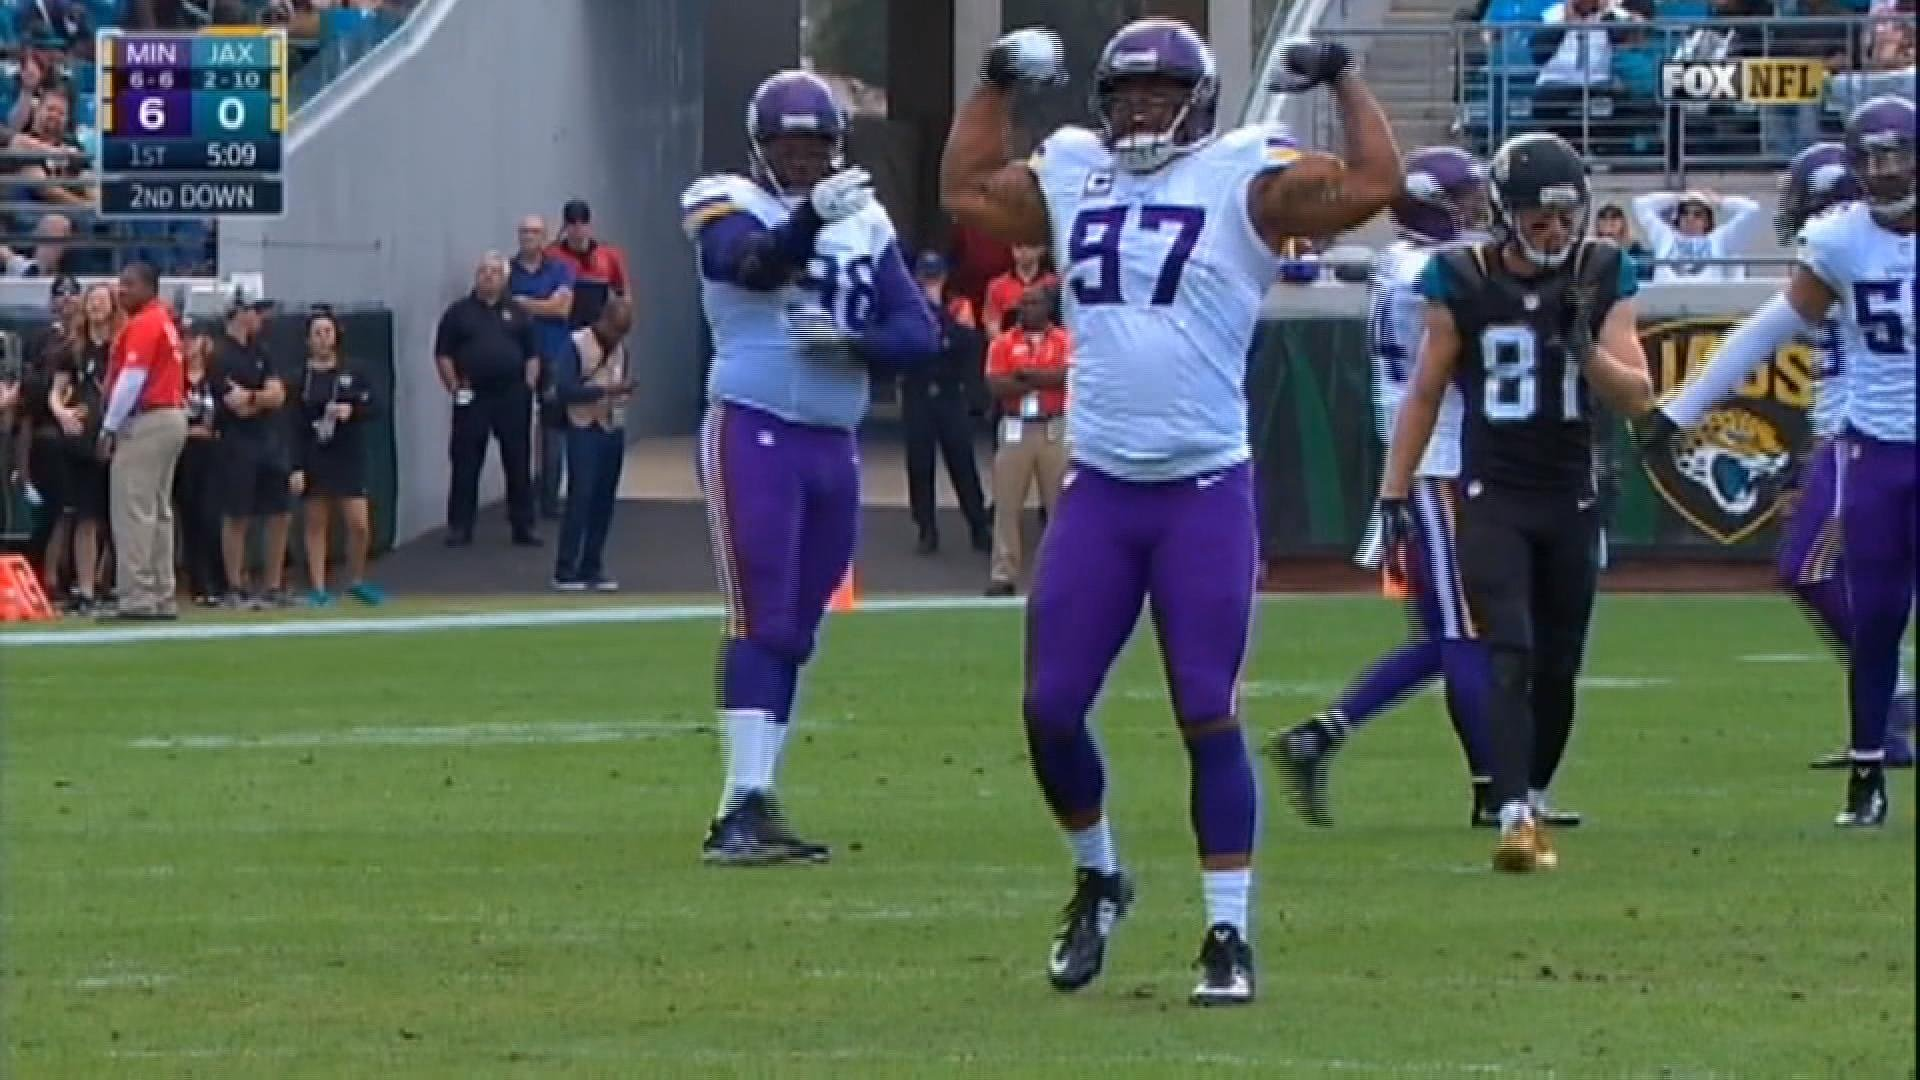 Vikings Sign Defensive End Everson Griffen To Four Year Contract